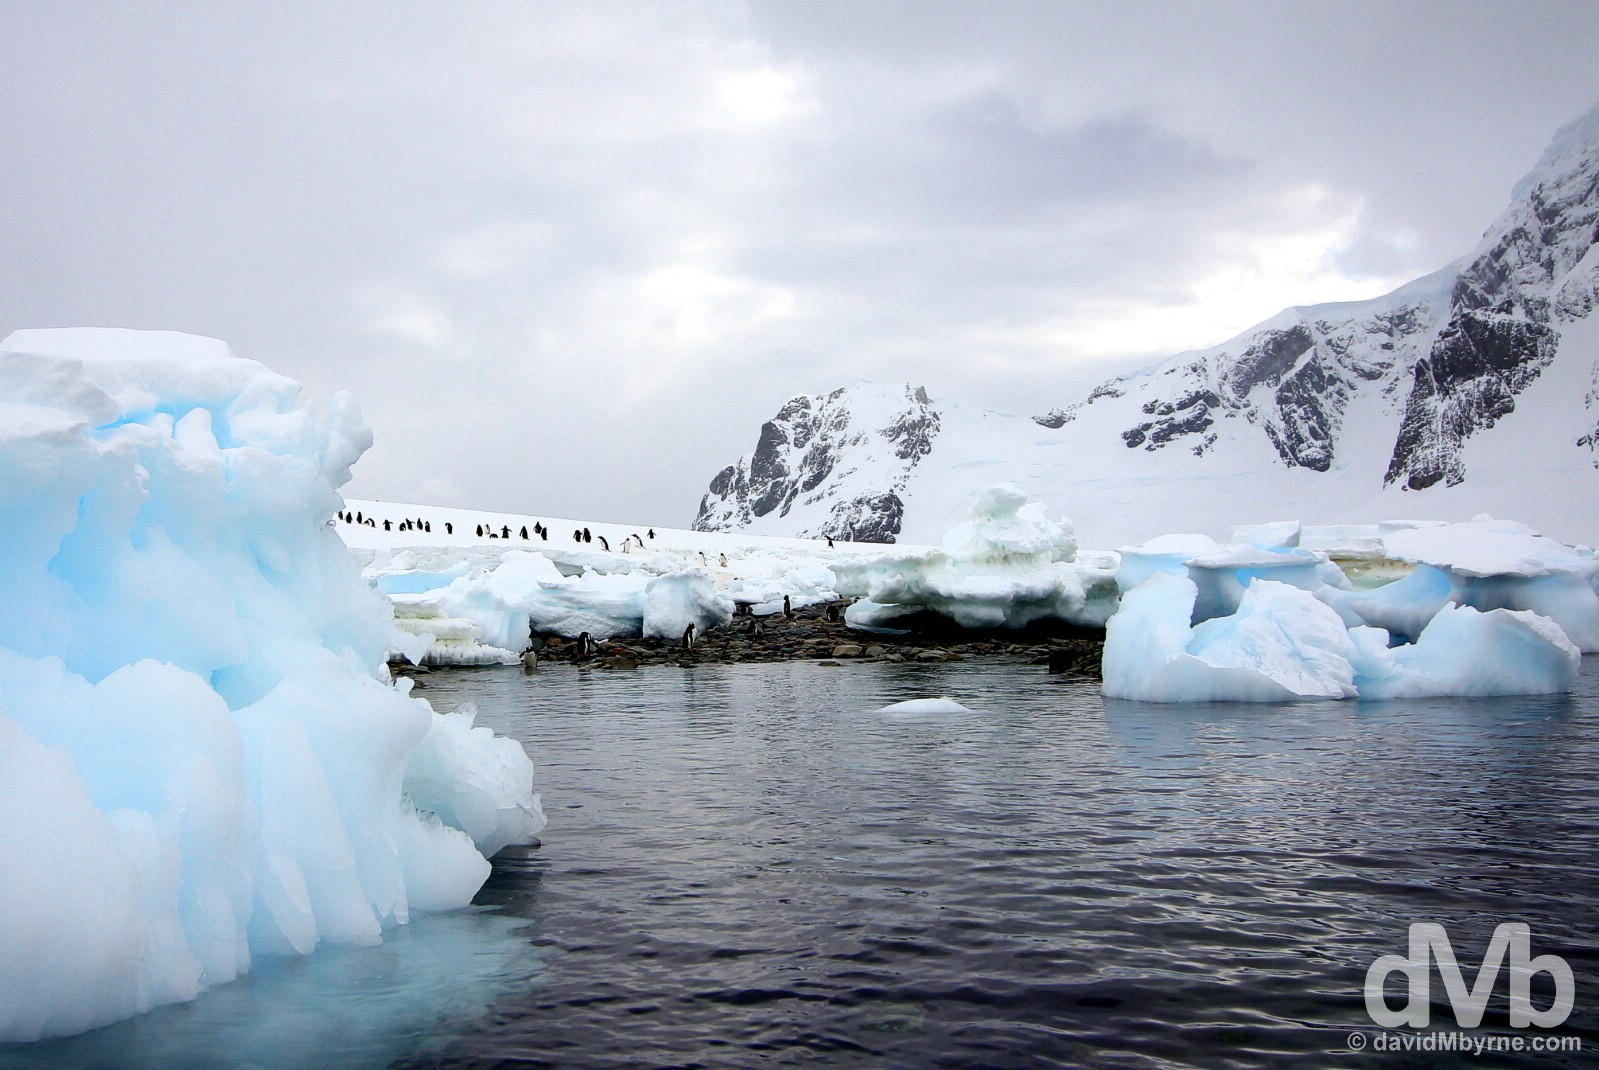 Danco Island, Antarctic Peninsula. November 30, 2015.